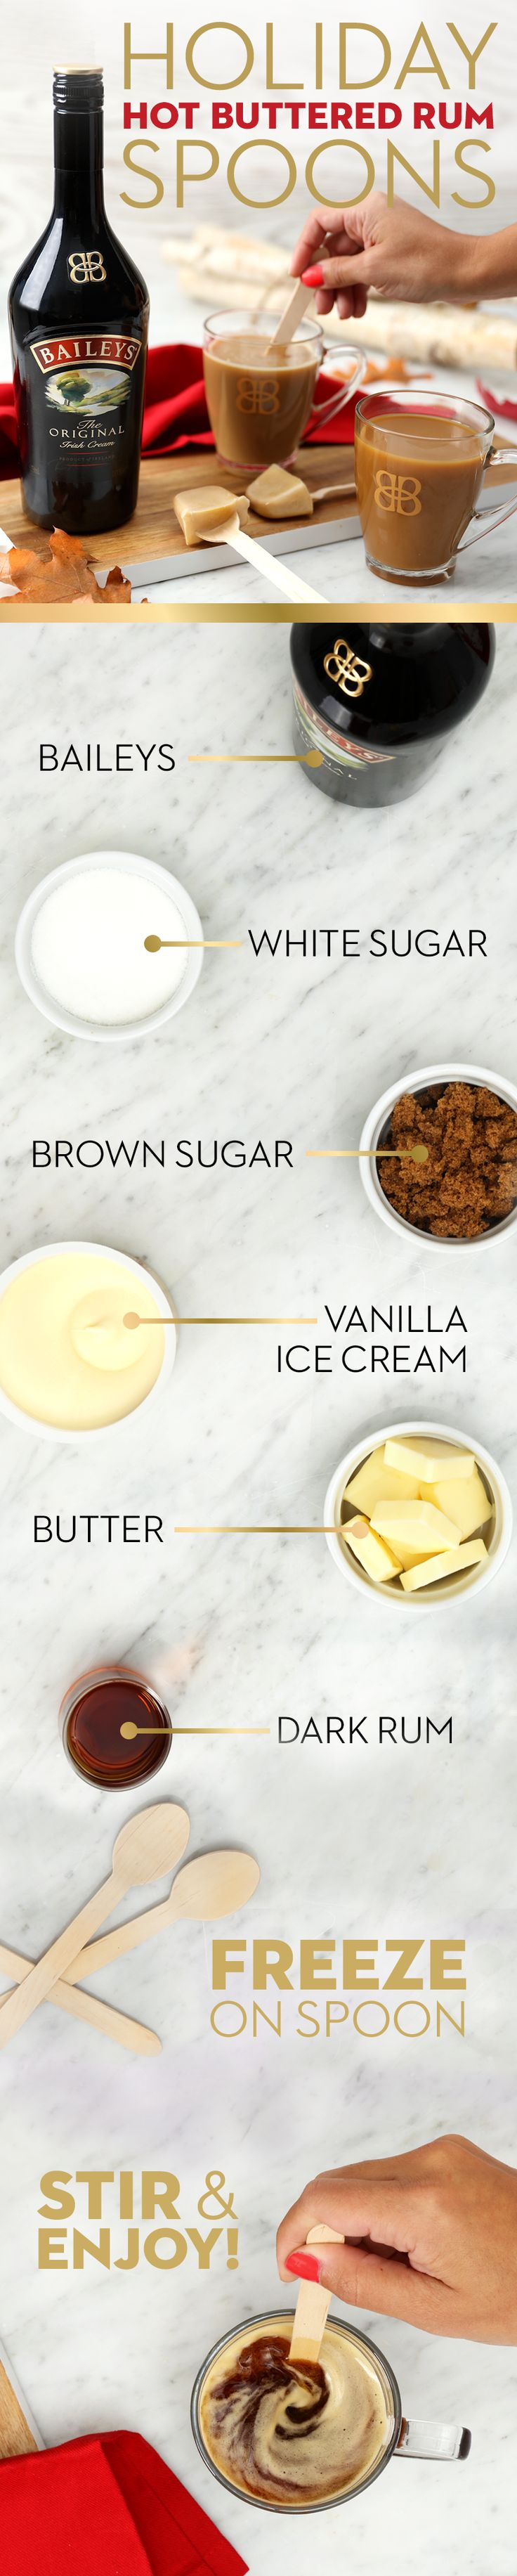 Tis the season for dinner parties, and guests are sure to swoon over this Baileys Irish Cream Liqueur twist on chocolate spoons: buttered rum batter spoons. Serve them during dessert to take your post-meal cup of joe from coffee to cocktails. To make, blend all ingredients including the ice cream and freeze overnight. Too full for dessert? Create these delicious and easy treats and send guests home with a unique and edible party favor that they're sure to indulge in during the holidays!